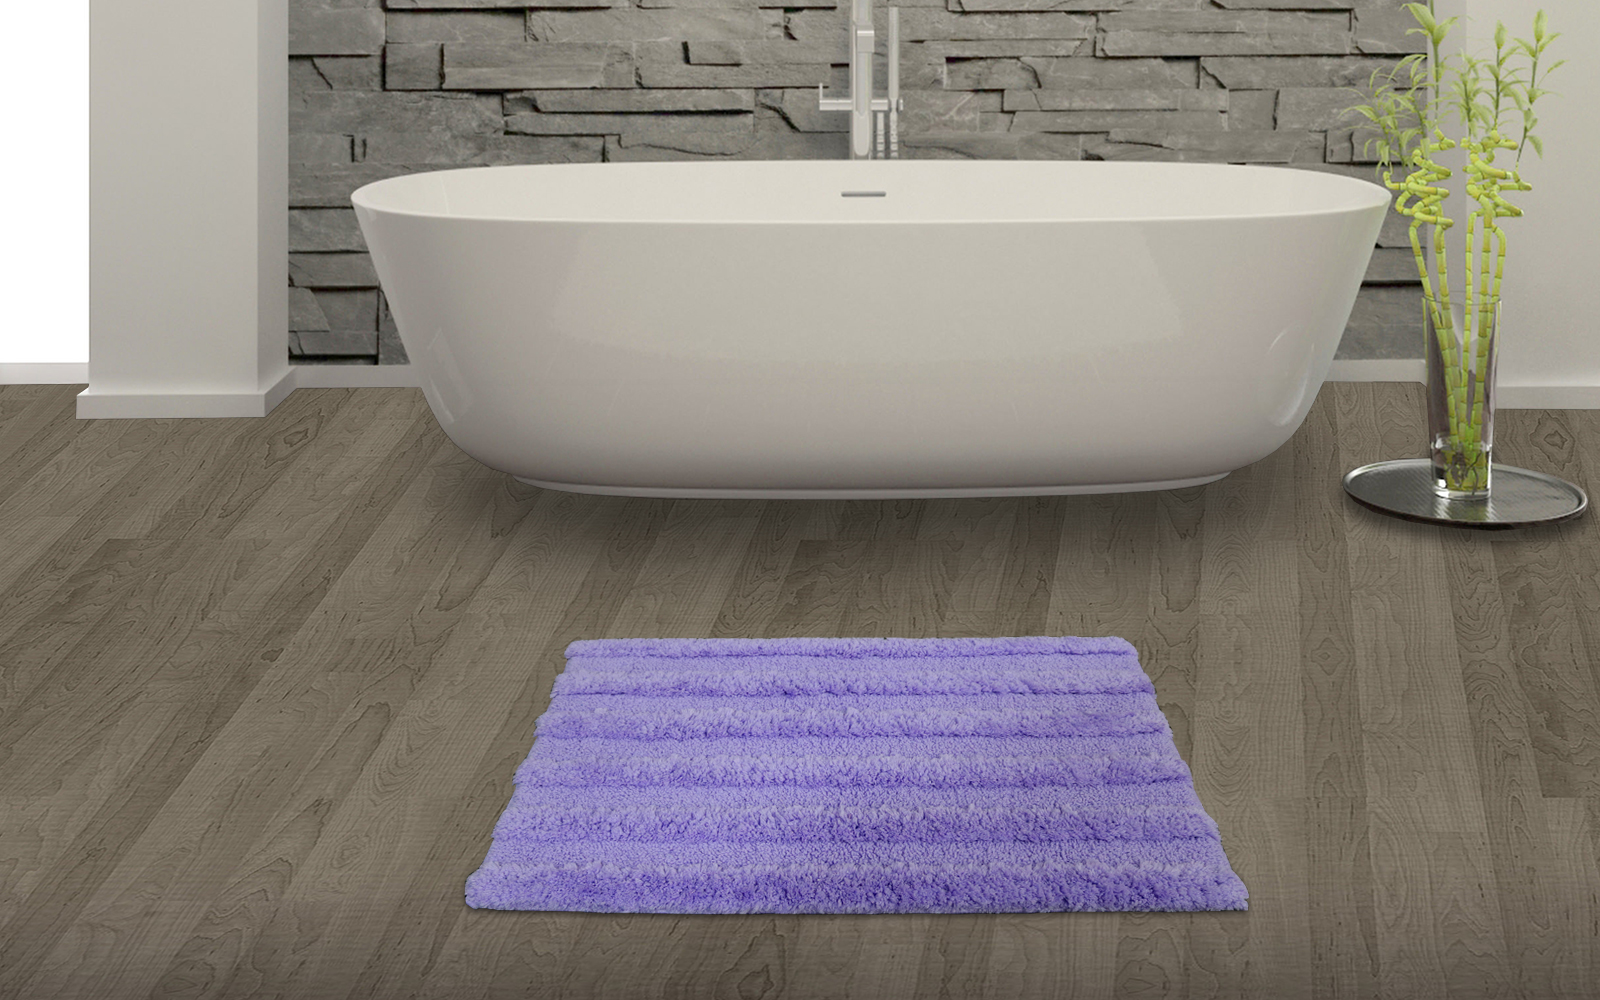 Spaces Swift Dry Lavender Cotton Bath Mat - Small Cotton Bath Mats in Lavender Colour by Spaces